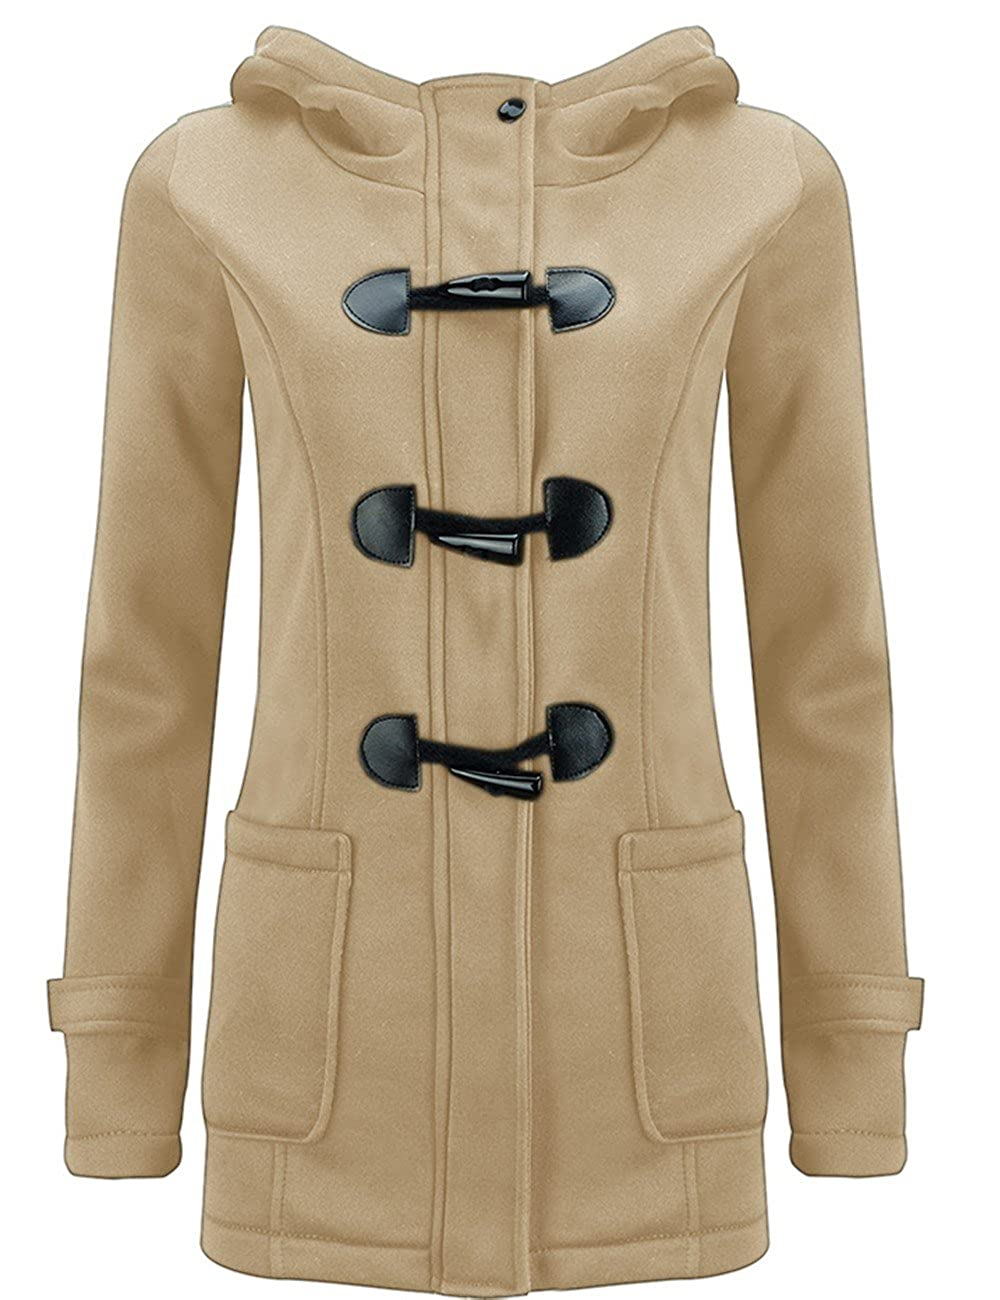 Z.M Women's Autumn Winter Pea Coat Wool Blended Hoodie Casual Button Jacket Coats